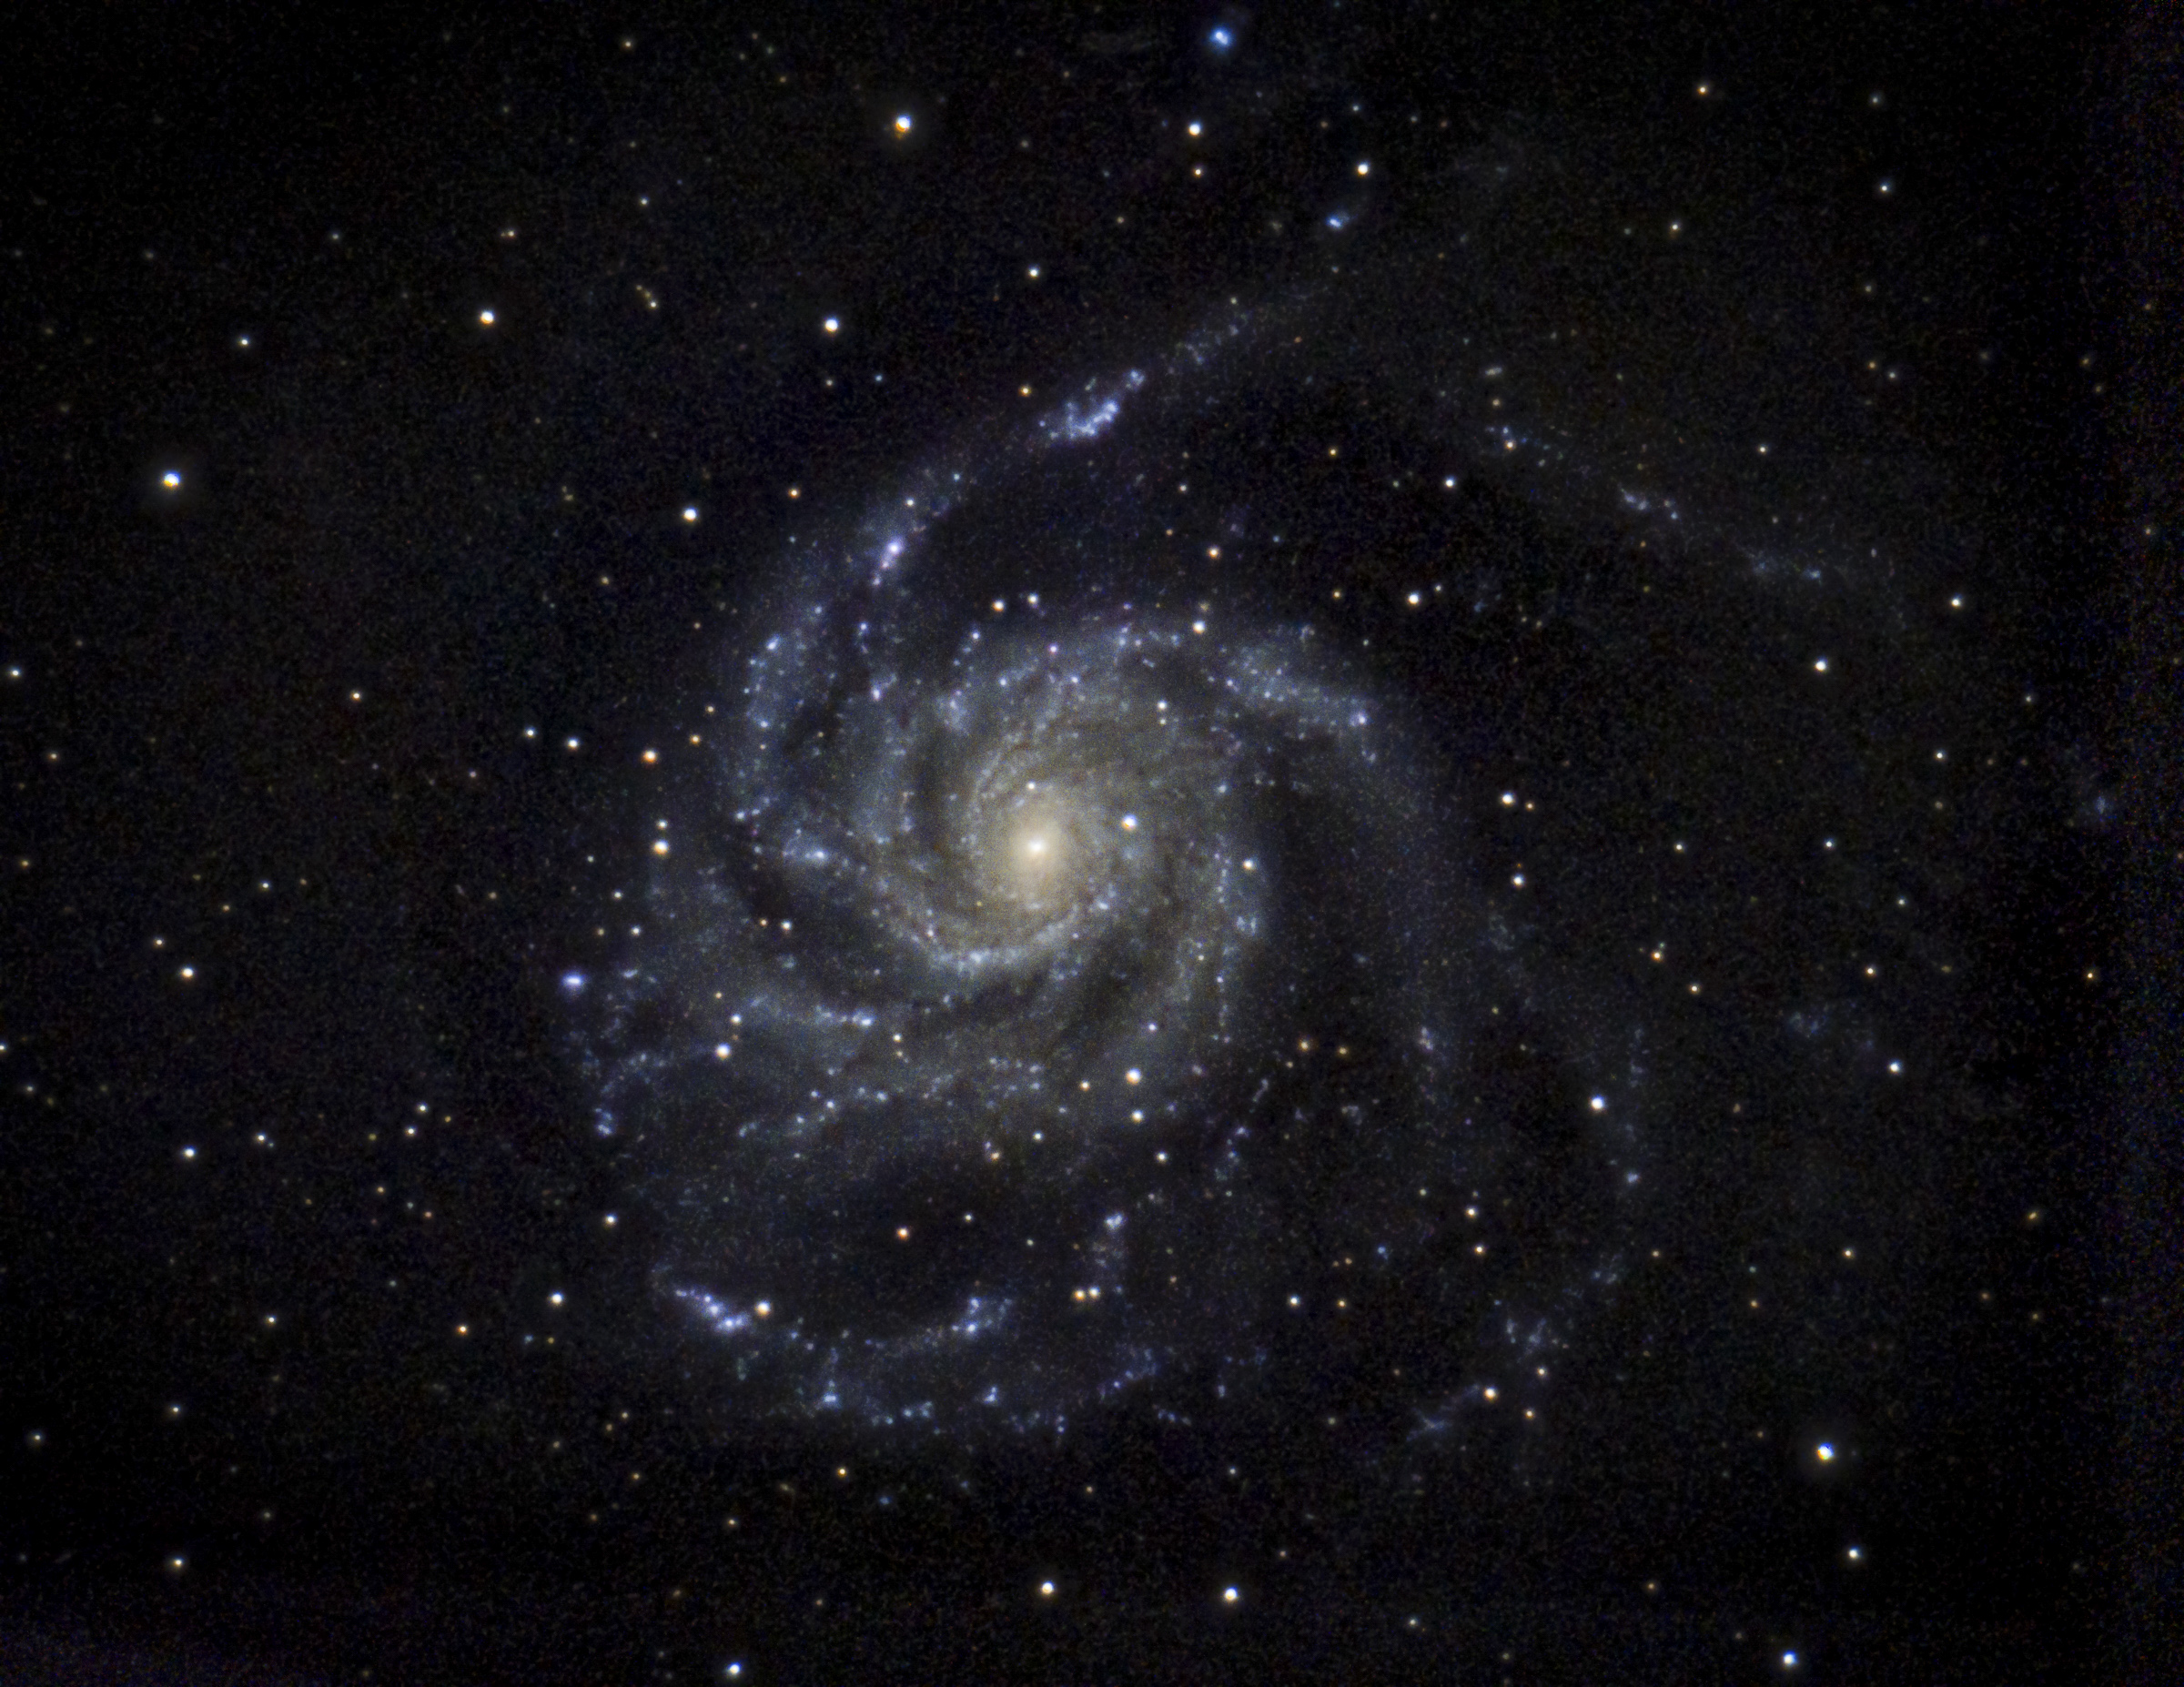 10 The Pinwheel Galaxy (M101)